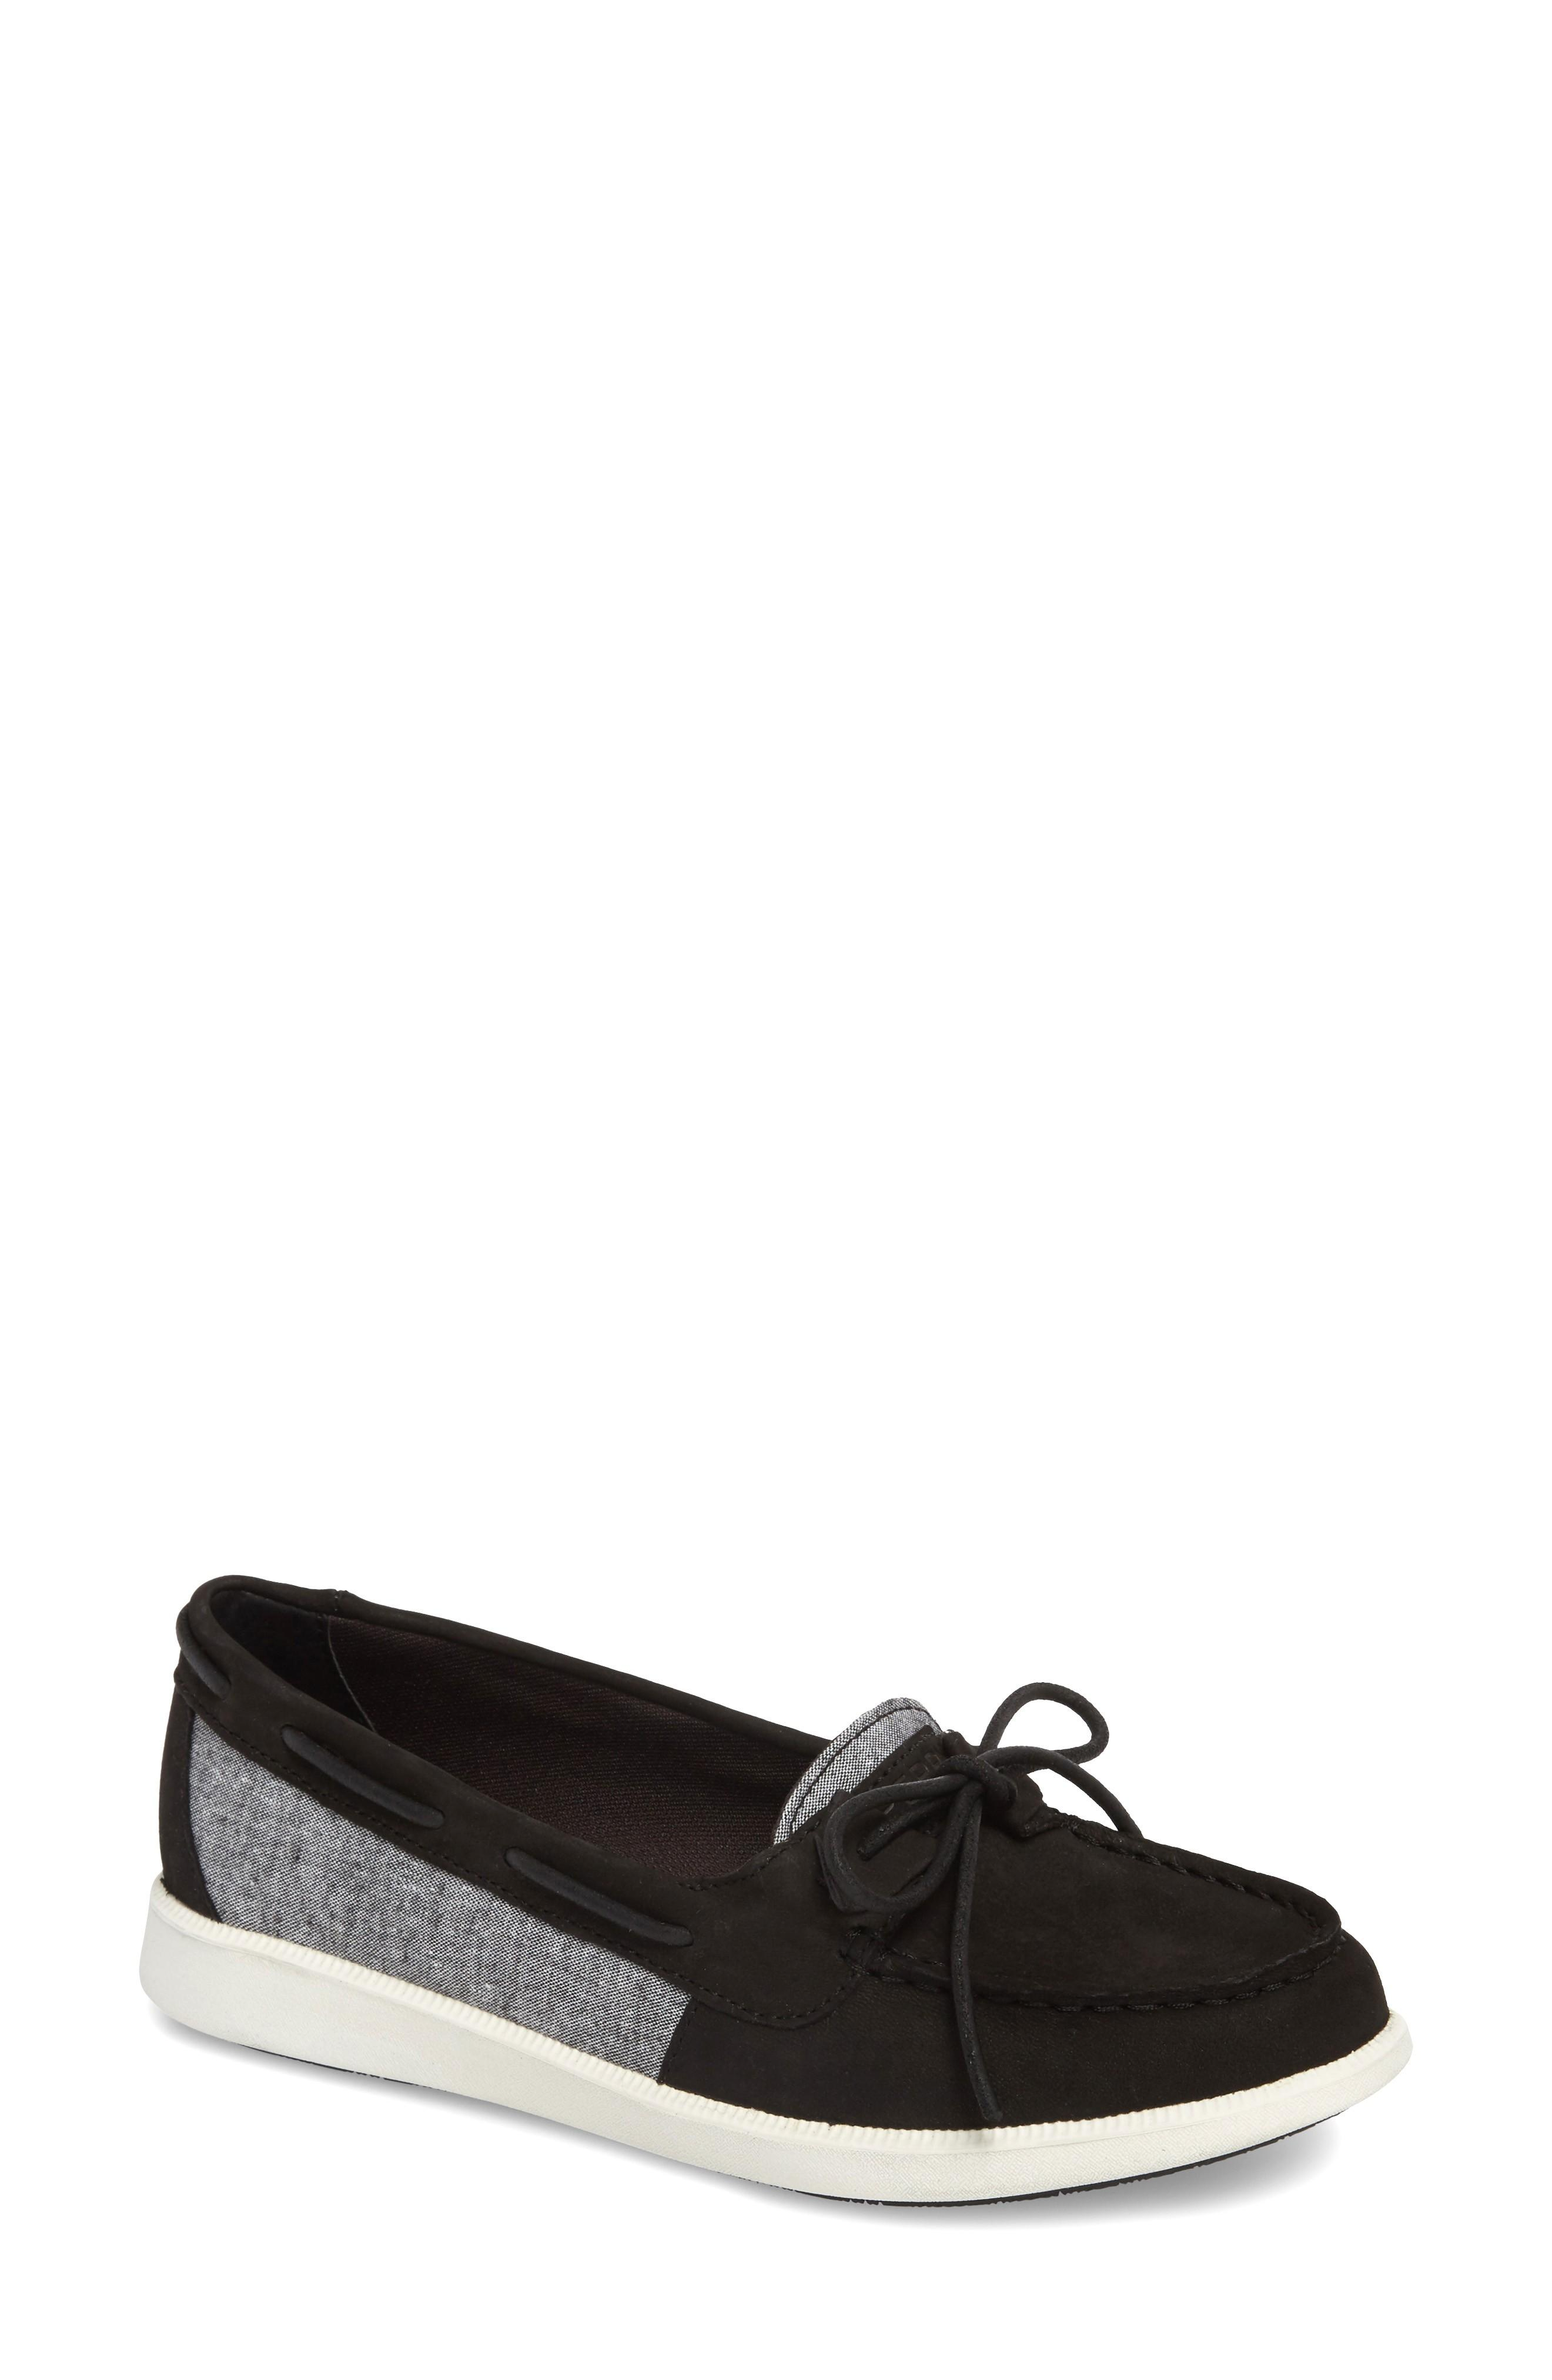 Sperry Oasis Boat Shoe In Black Chambray Canvas